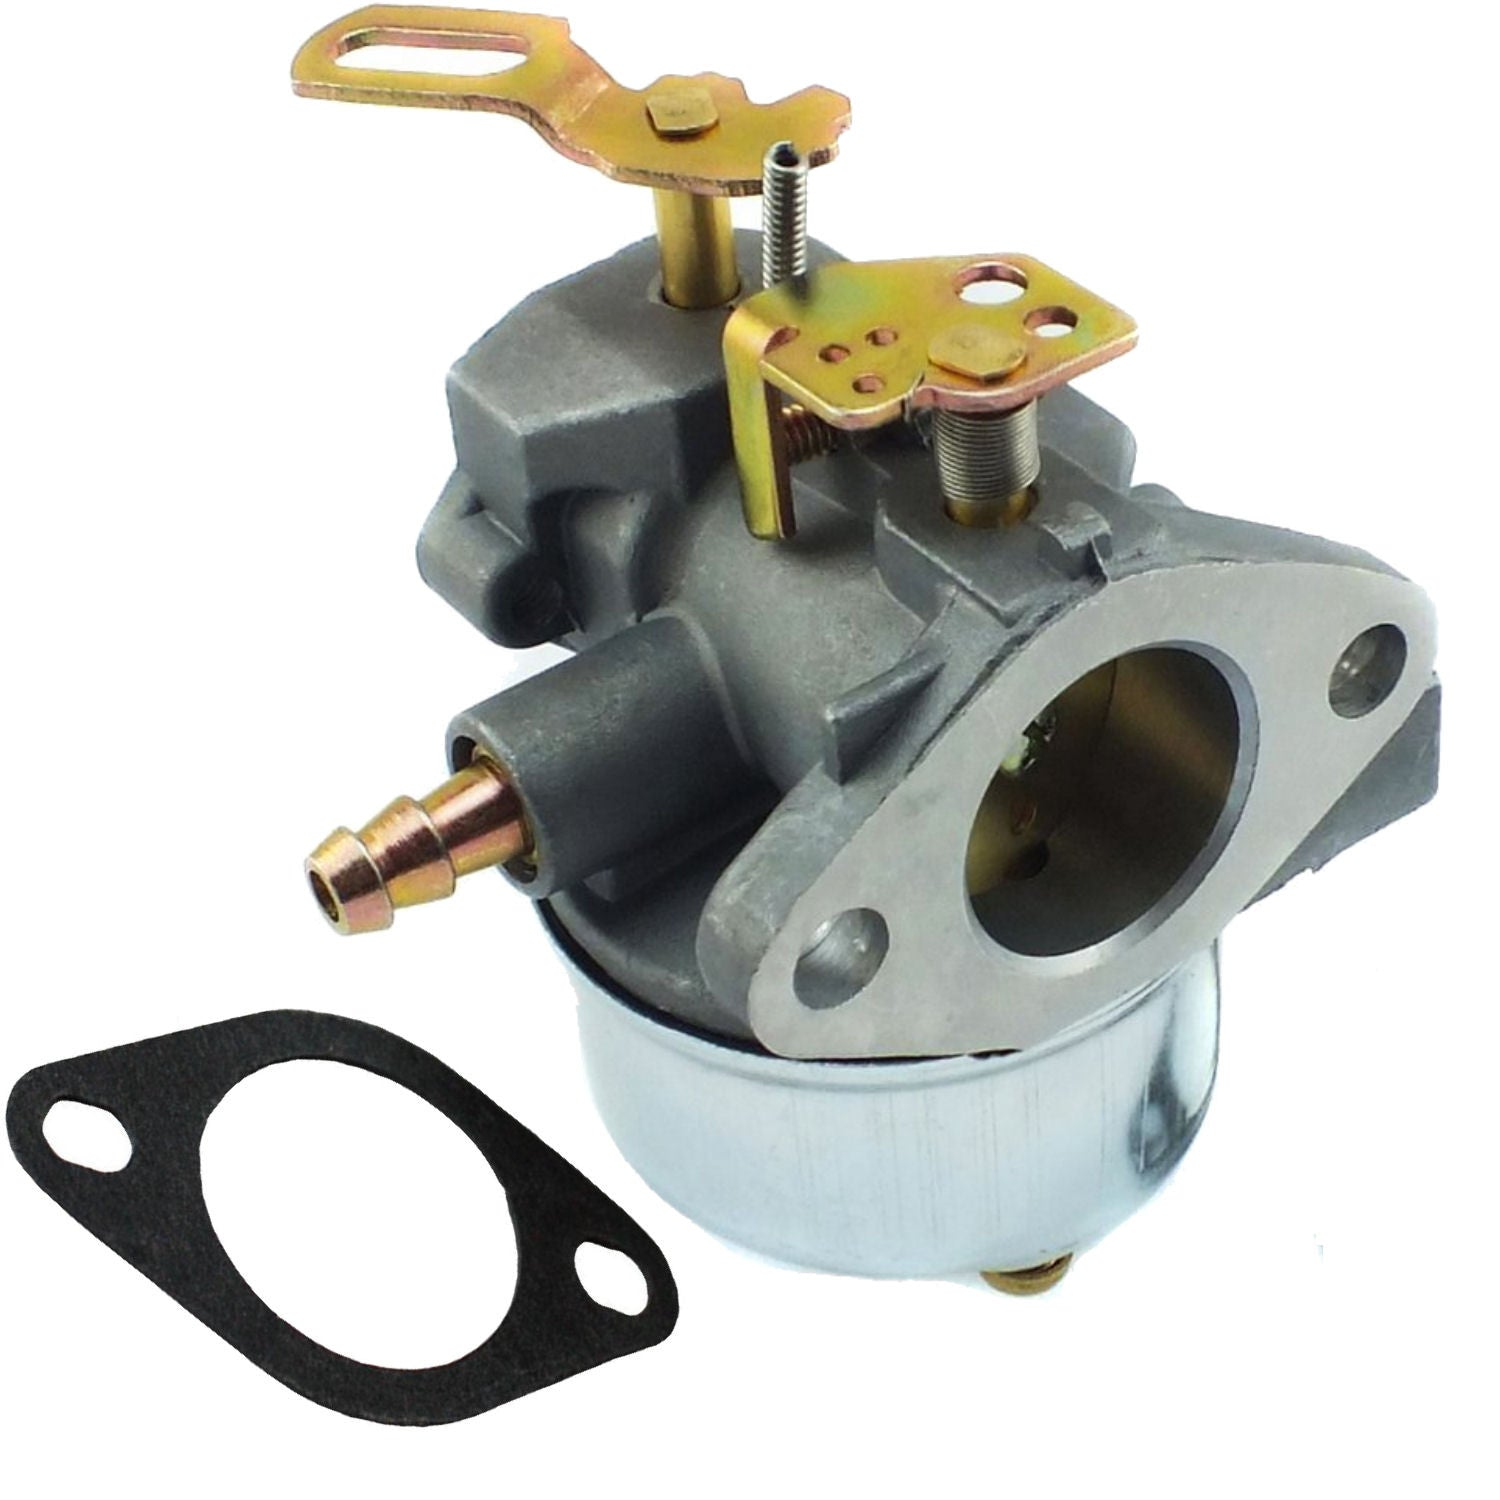 TECUMSEH CARBURETOR 640349 640054 640052 8hp 9hp 10hp HMSK80 HMSK90 Engine  New